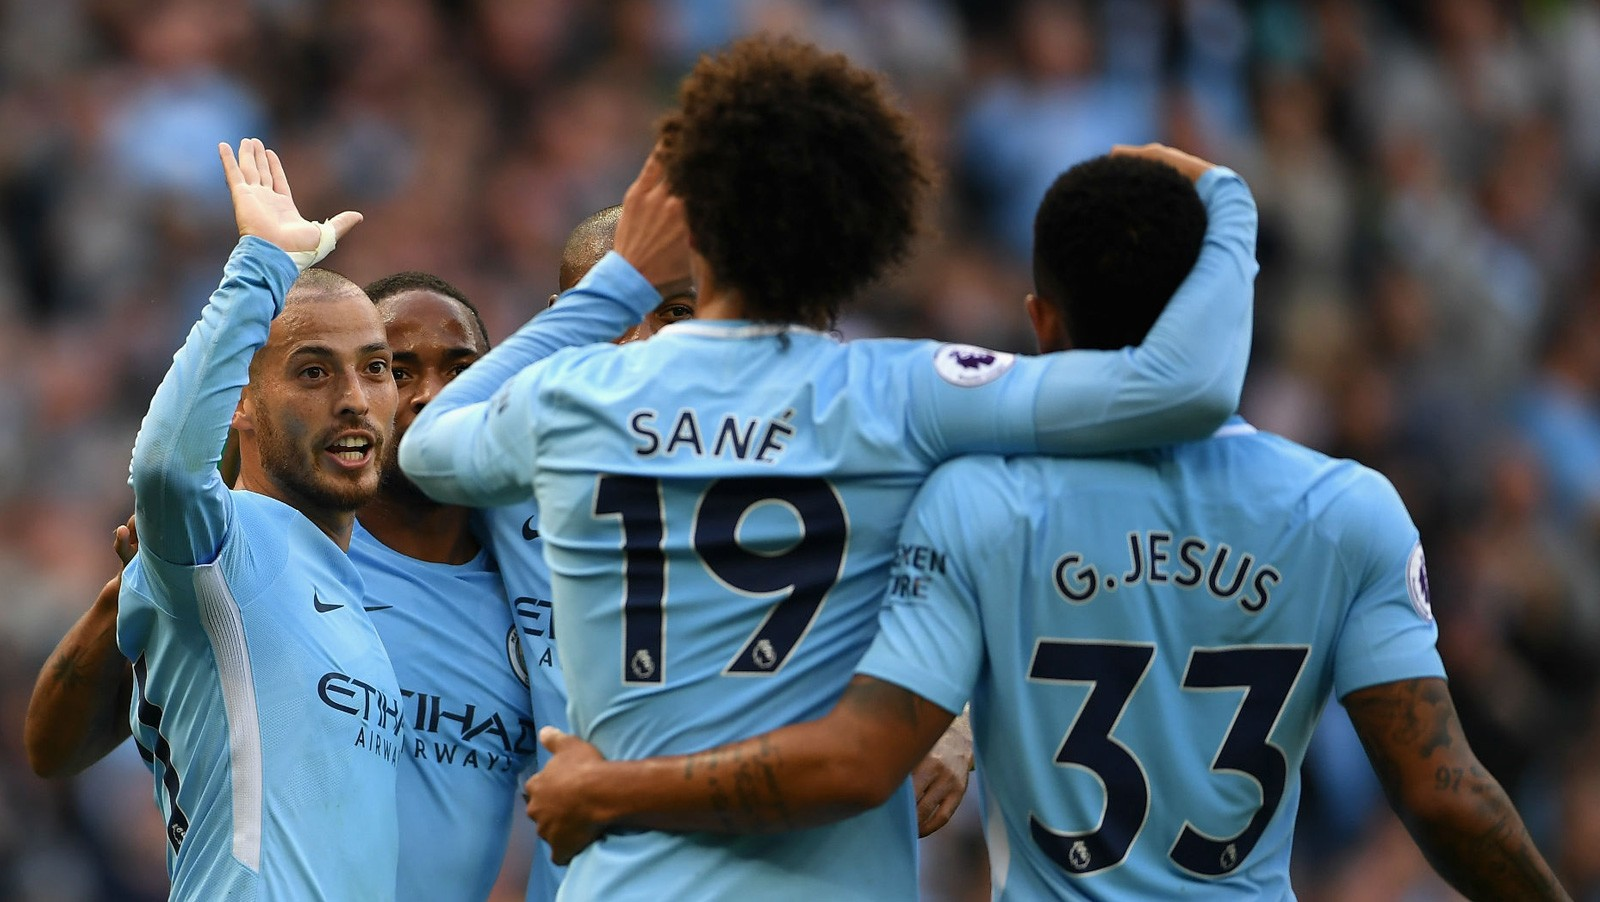 EPL week 11 review: Man City breaking more records